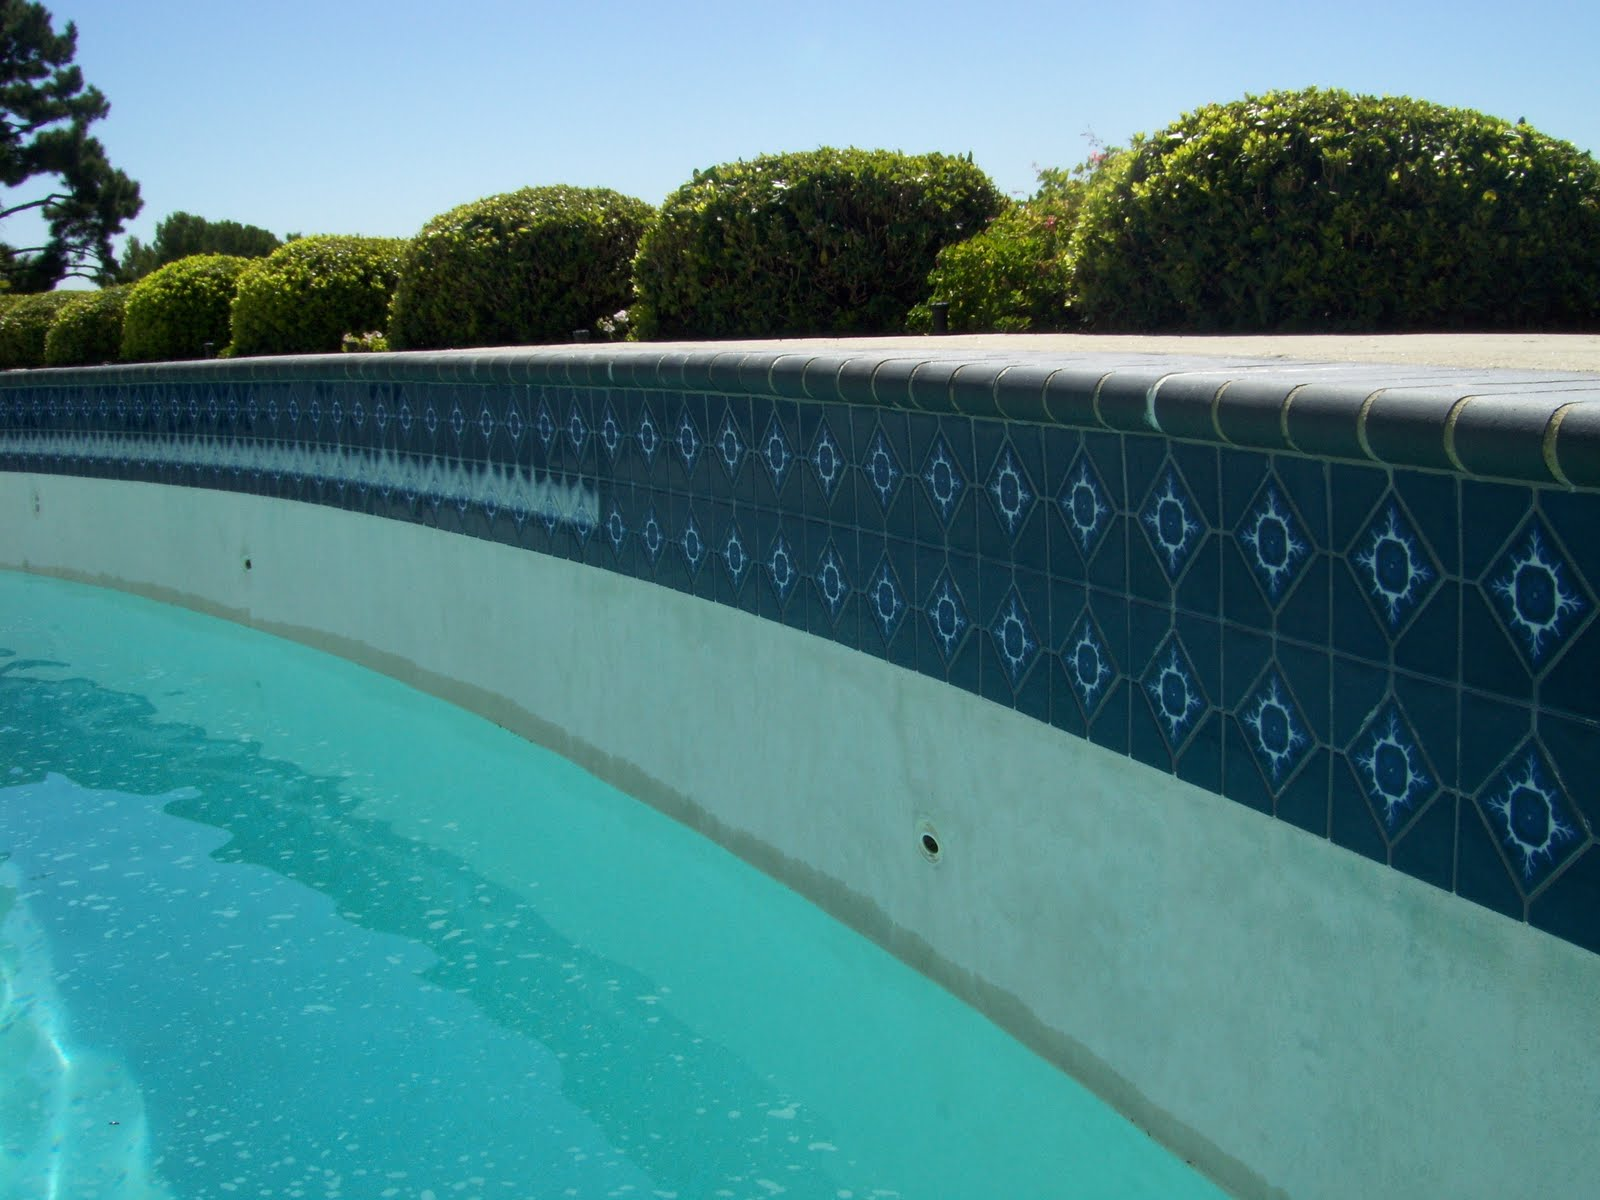 Pool tile cleaning pro 877 835 8763 orange county los for Pressure clean pools